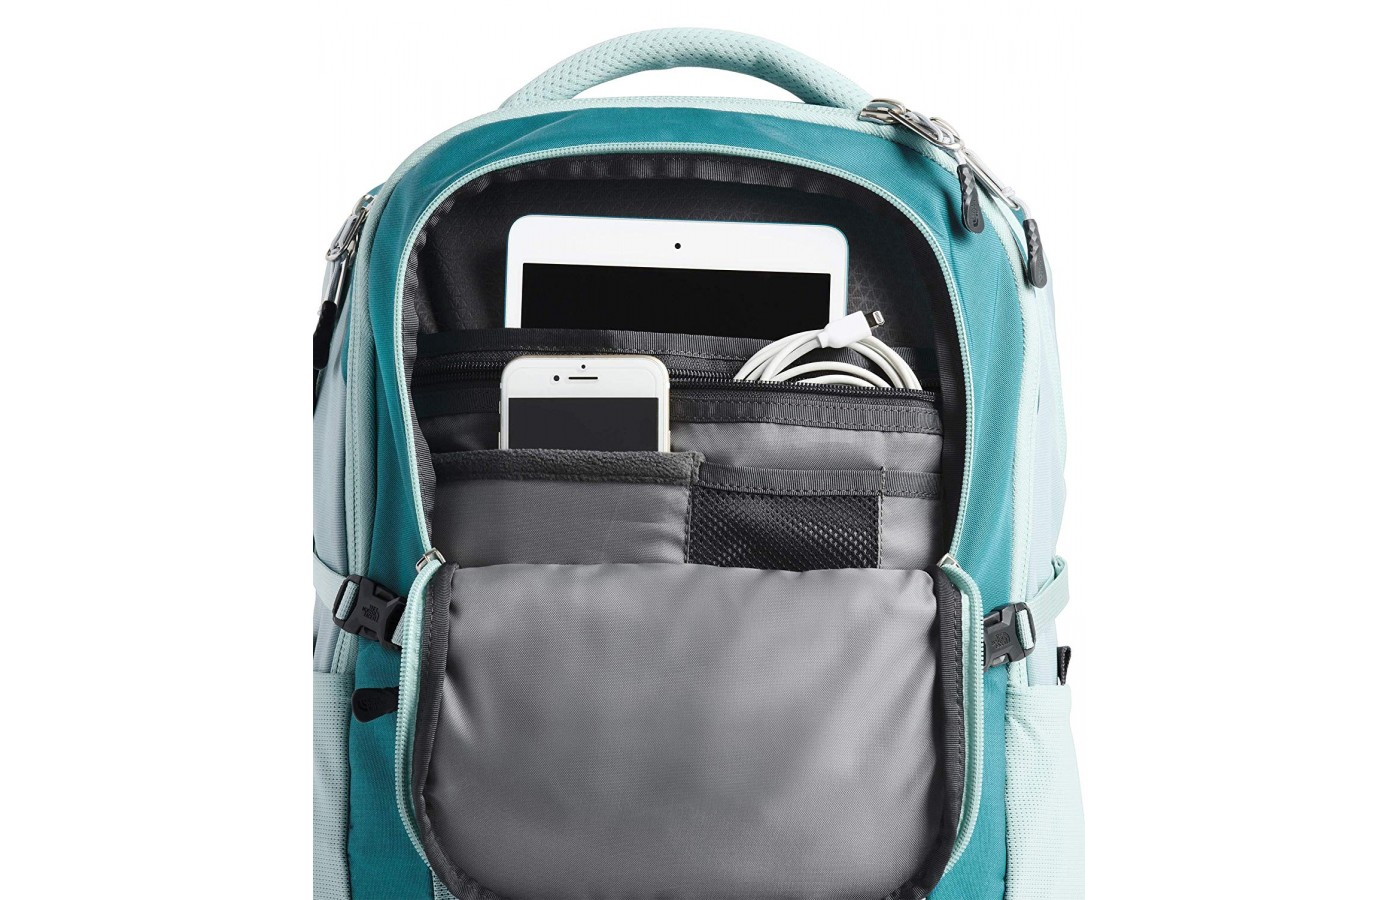 The smaller compartment is a padded fleece lined pocket for an electronic device or small tablet.